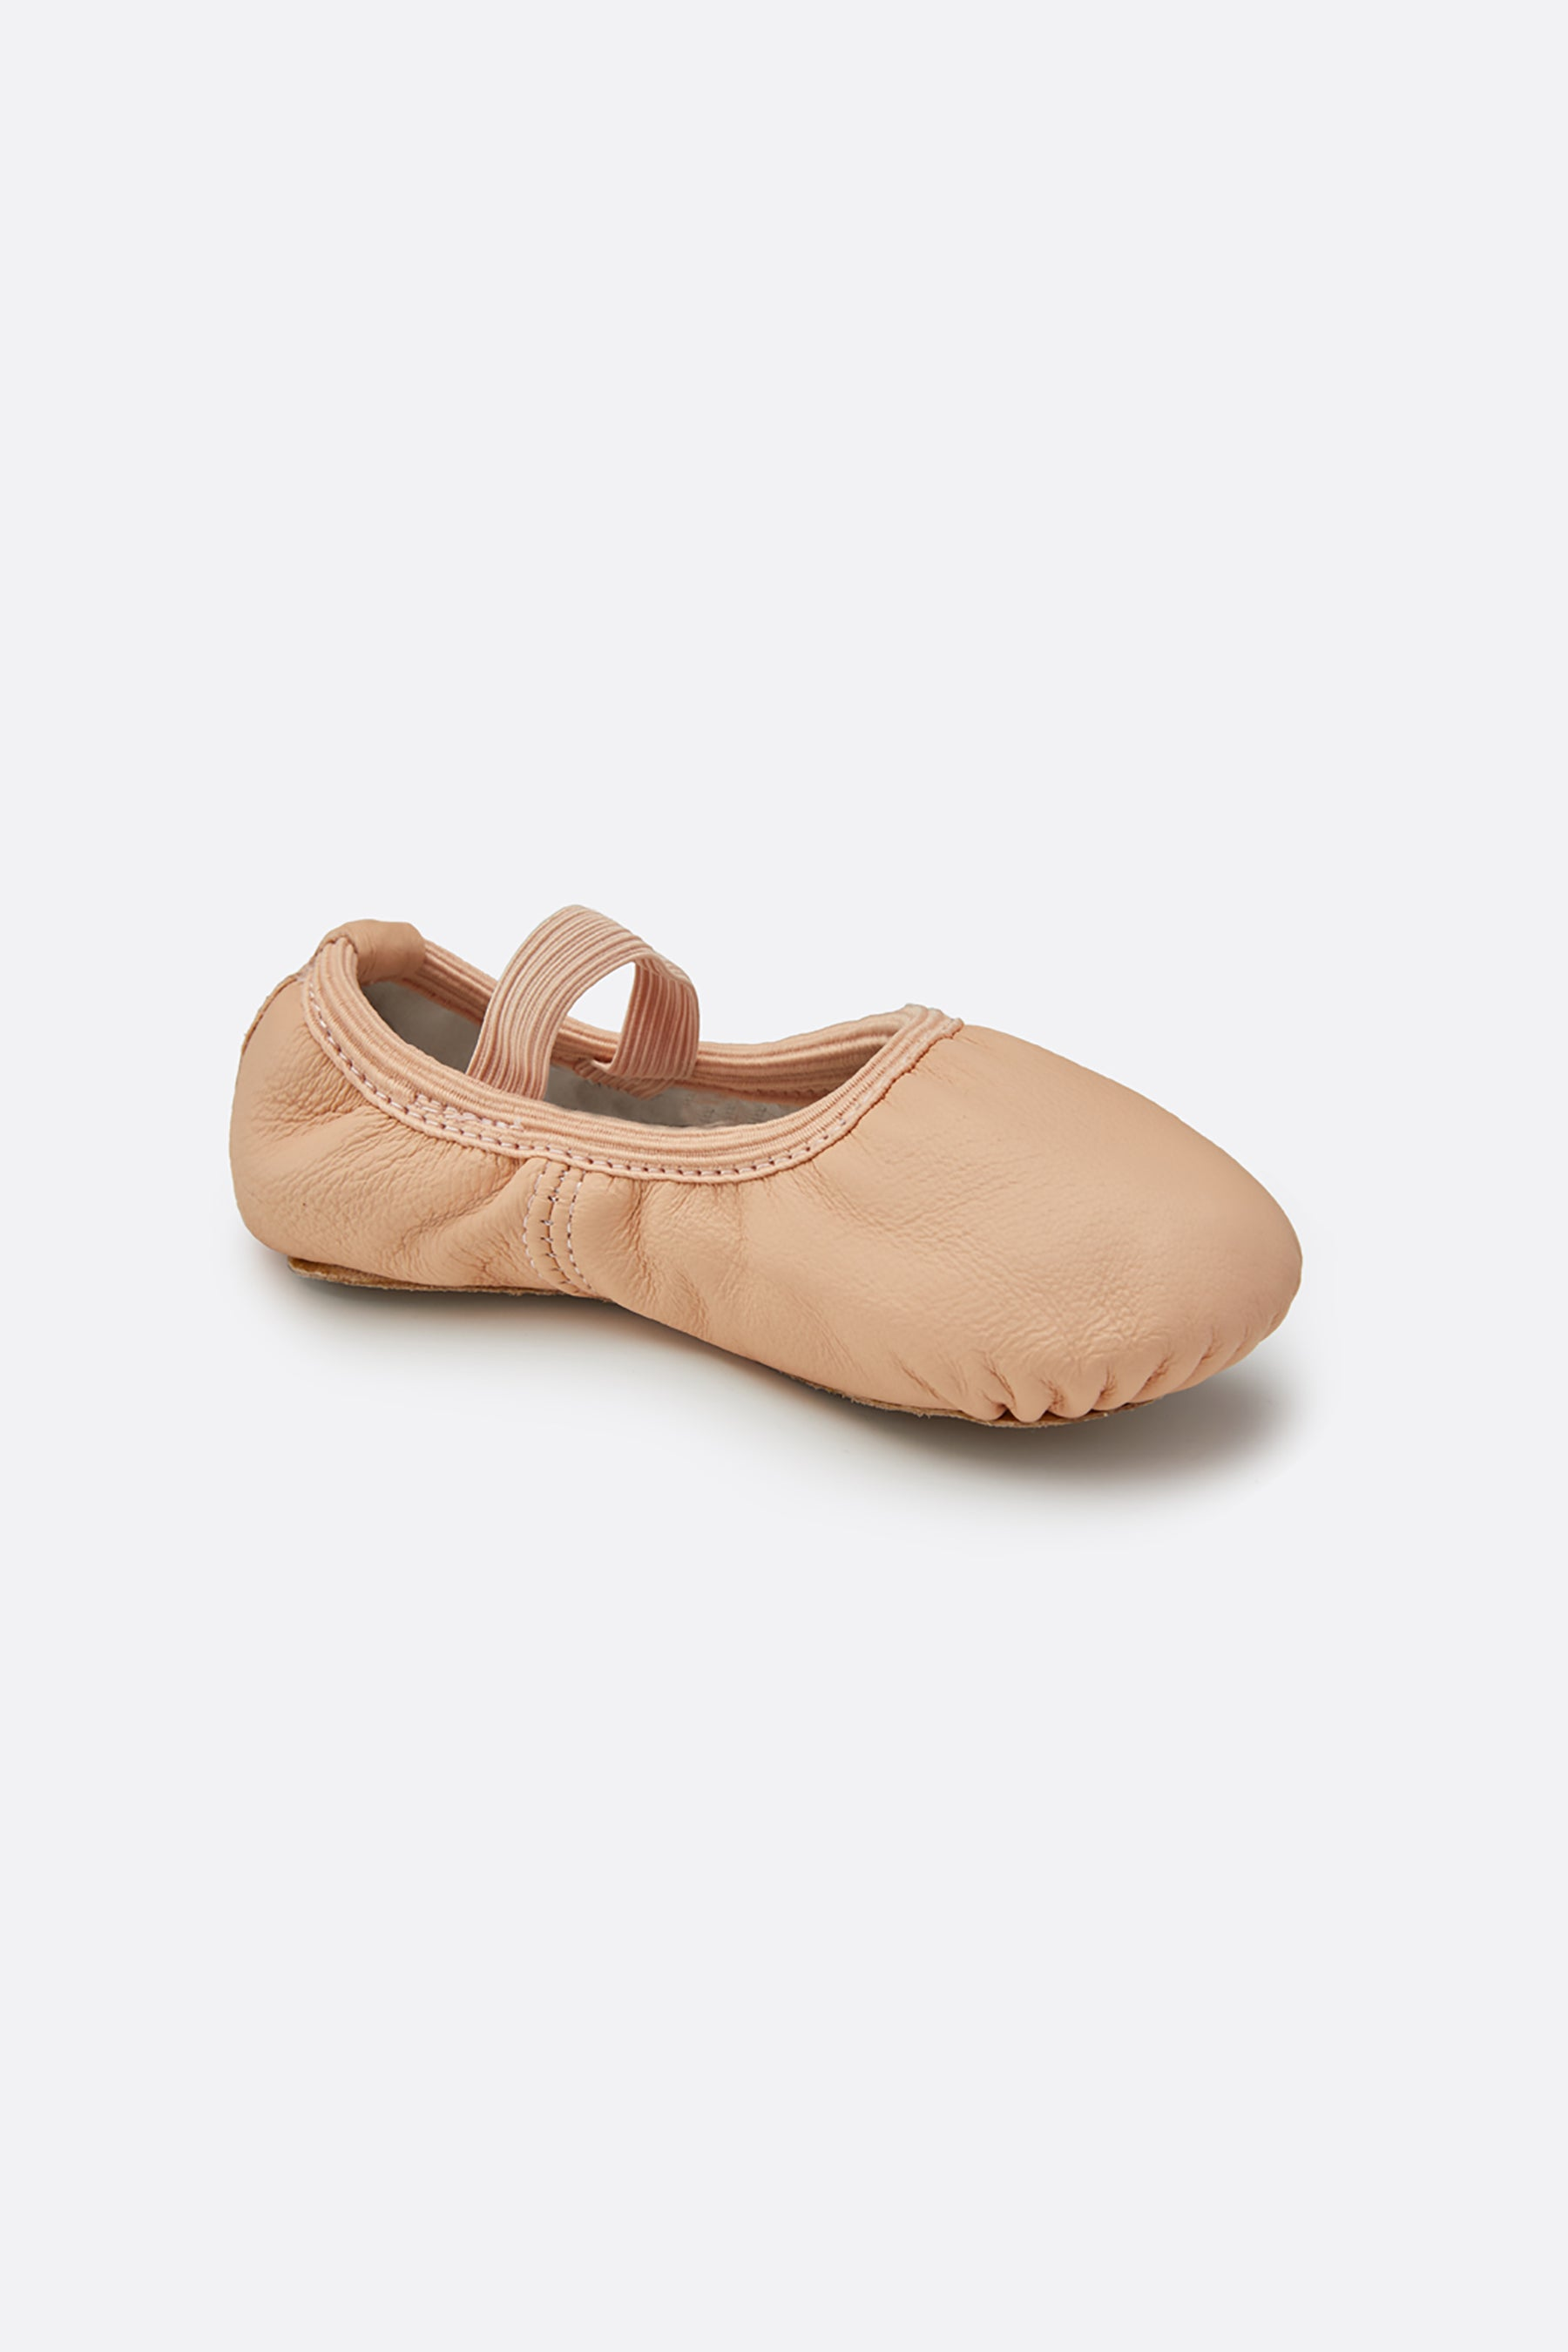 Girl's Premium Leather Ballet Shoes (no drawstring)